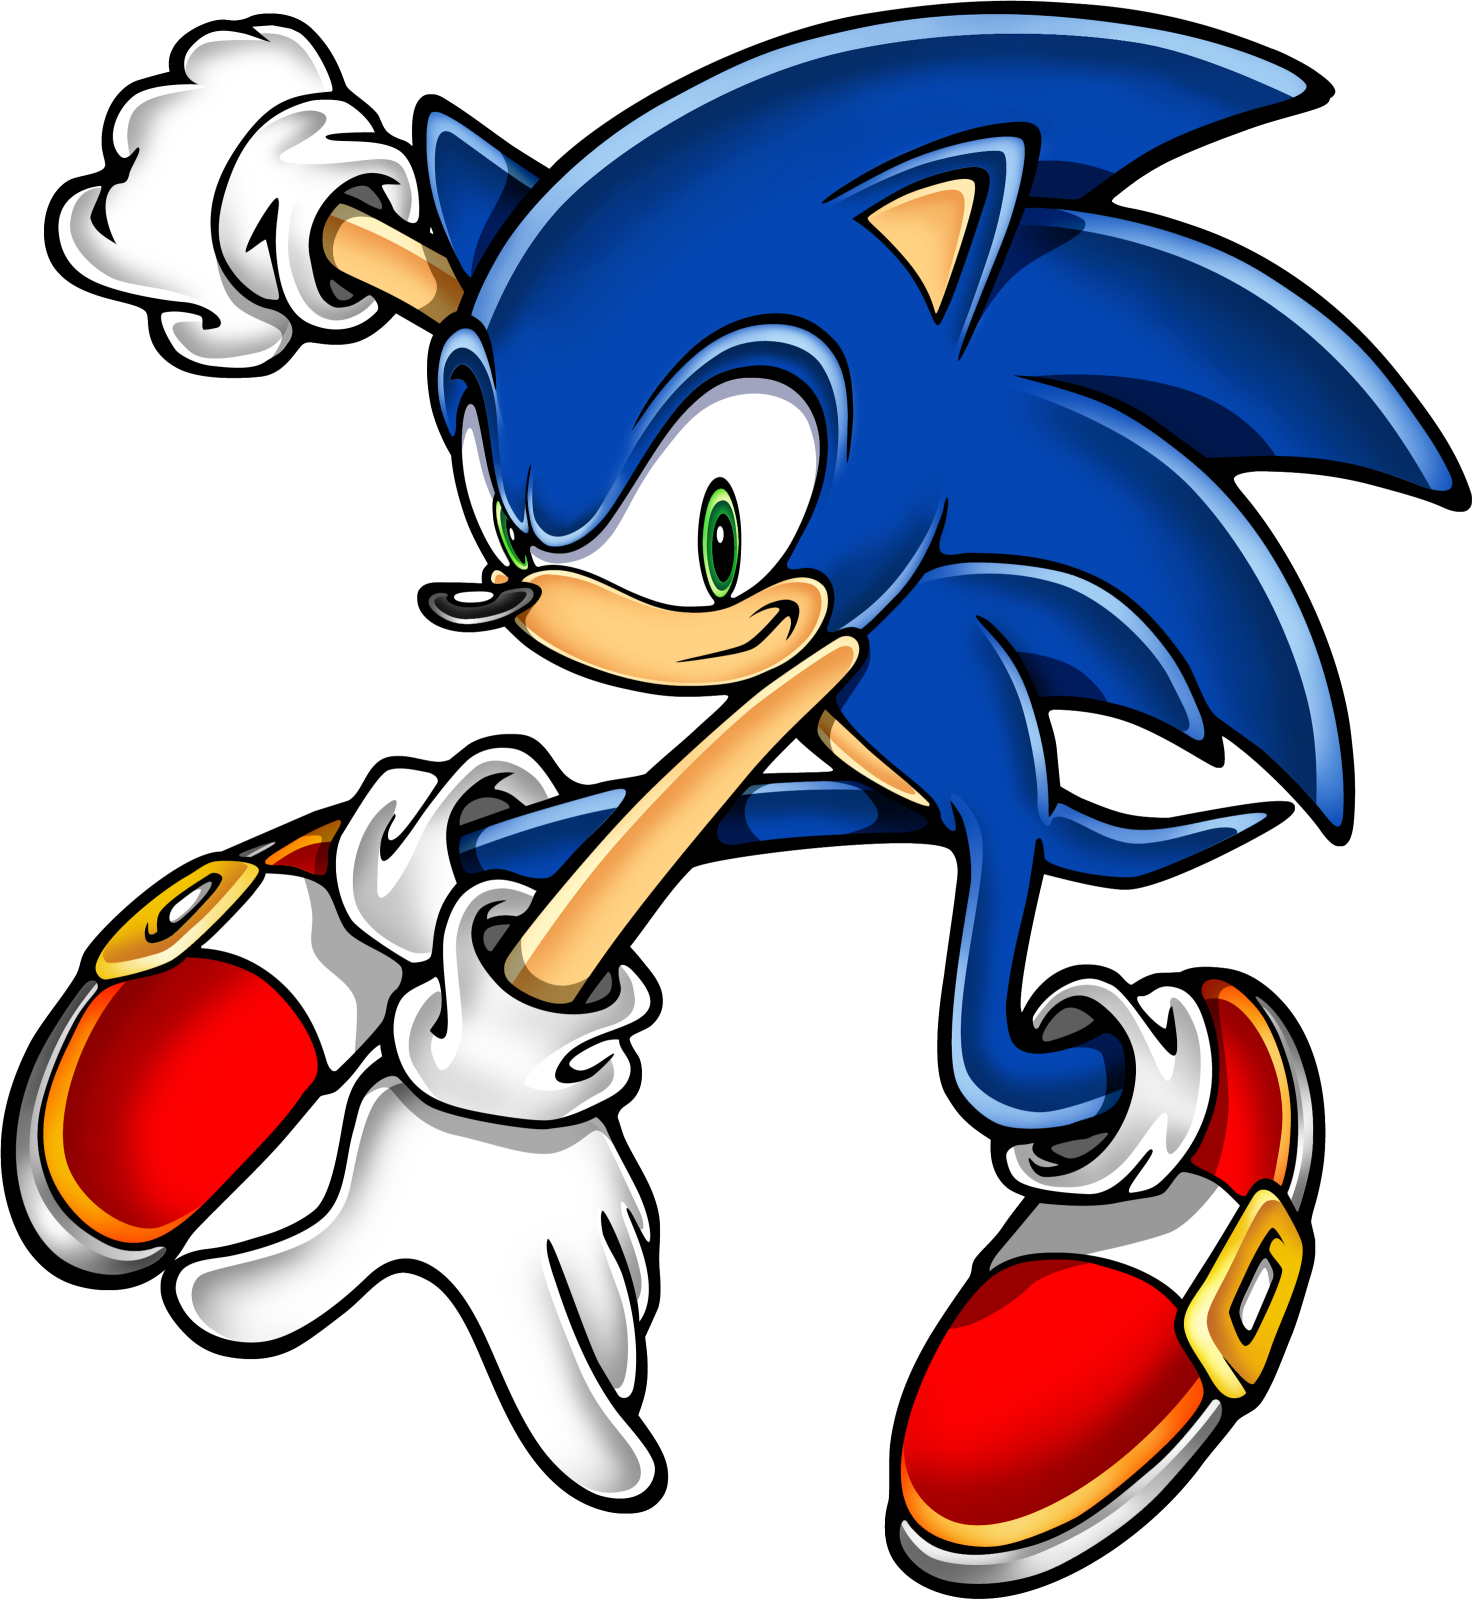 Image - Sonic Art Assets DVD - Sonic The Hedgehog - 21.png | Sonic News  Network | FANDOM powered by Wikia - Sonic The Hedgehog PNG